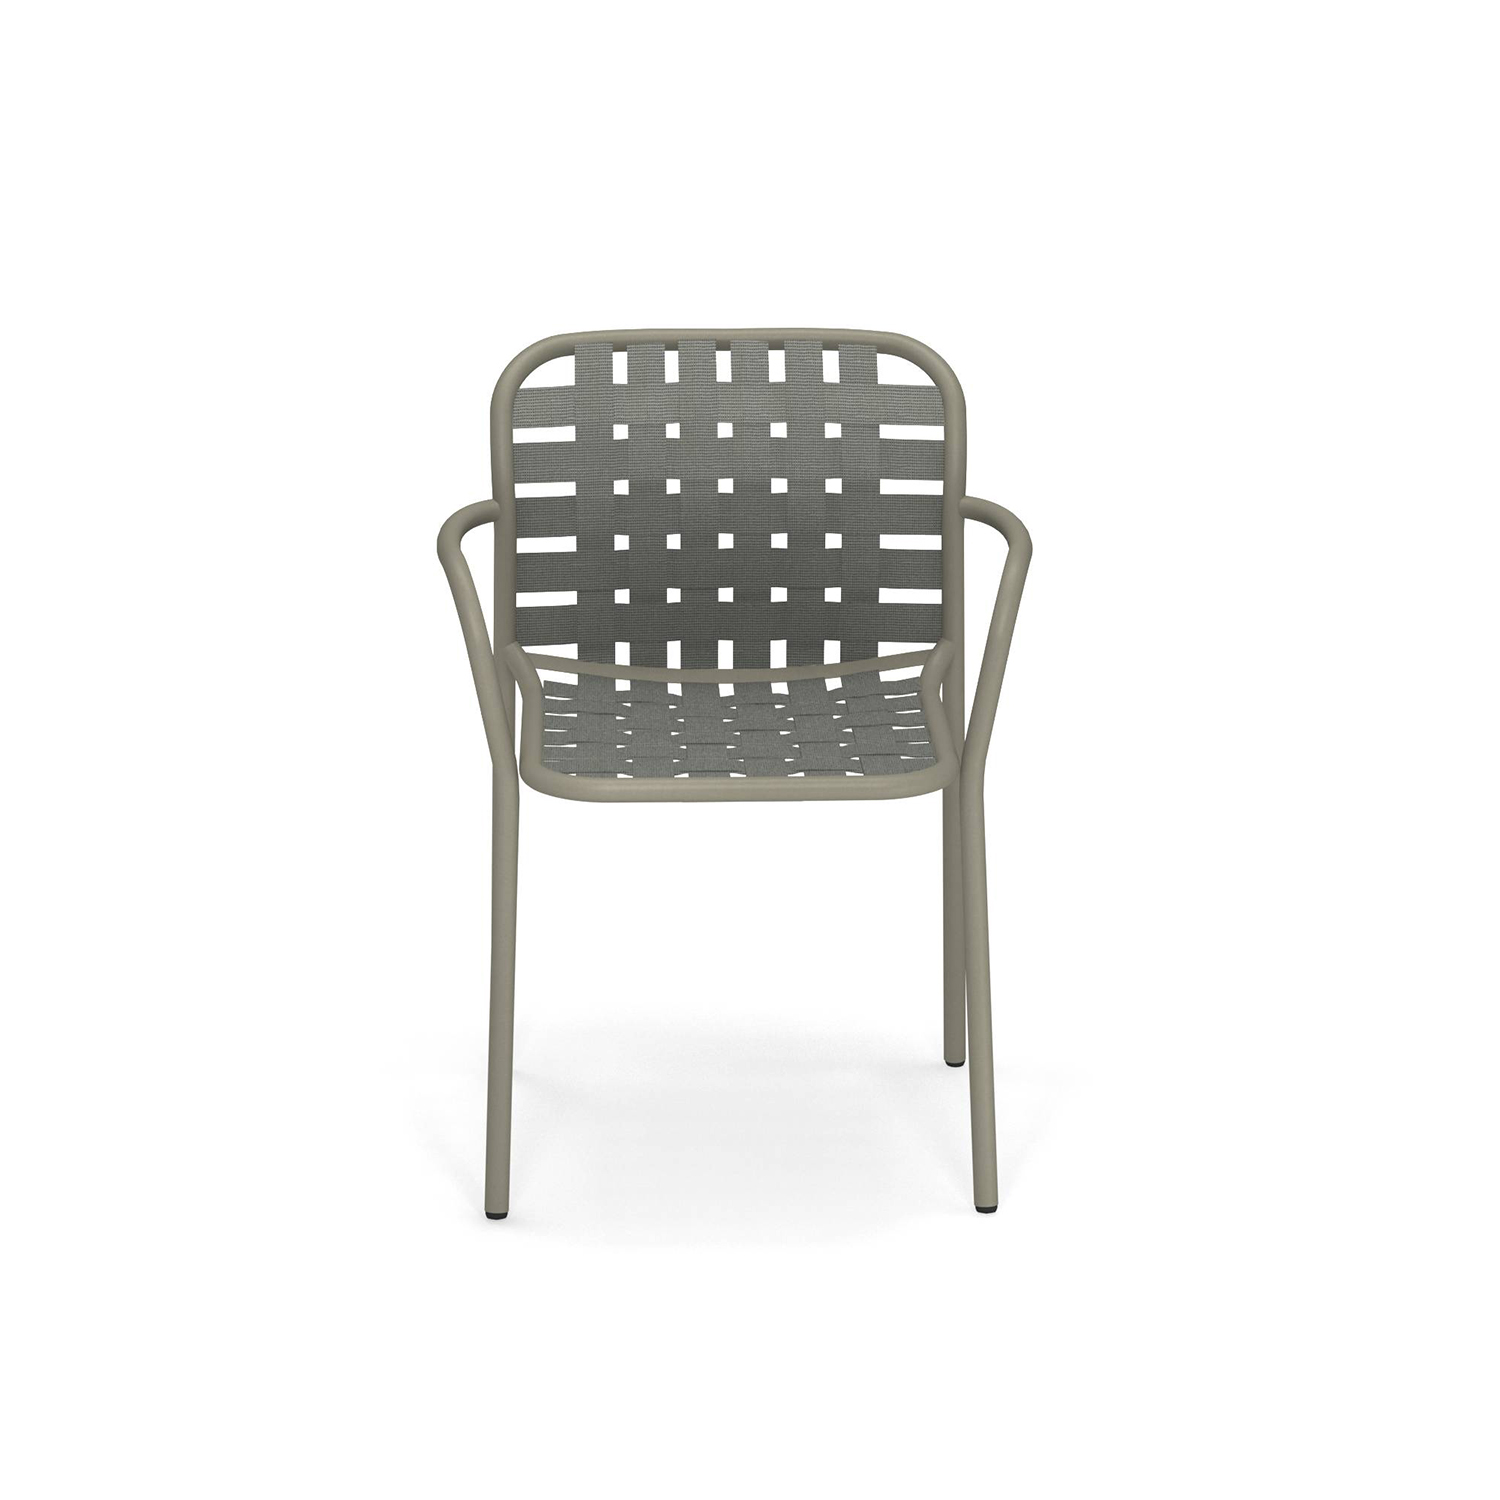 Yard Armchair - Set of 4 - <p>The weave elastic straps, fastened to the sophisticated aluminium frame in an innovative way give life to a collection defined by outstanding, eclectic style and superb comfort, perfectly suitable for outdoor uses. Yard is a complete range of furniture, made up of a chair, an armchair, a stool, fixed and extensible tables, foldable tables, lounge armchairs, coffee tables of various sizes, as sofa and a and sunbed.</p>